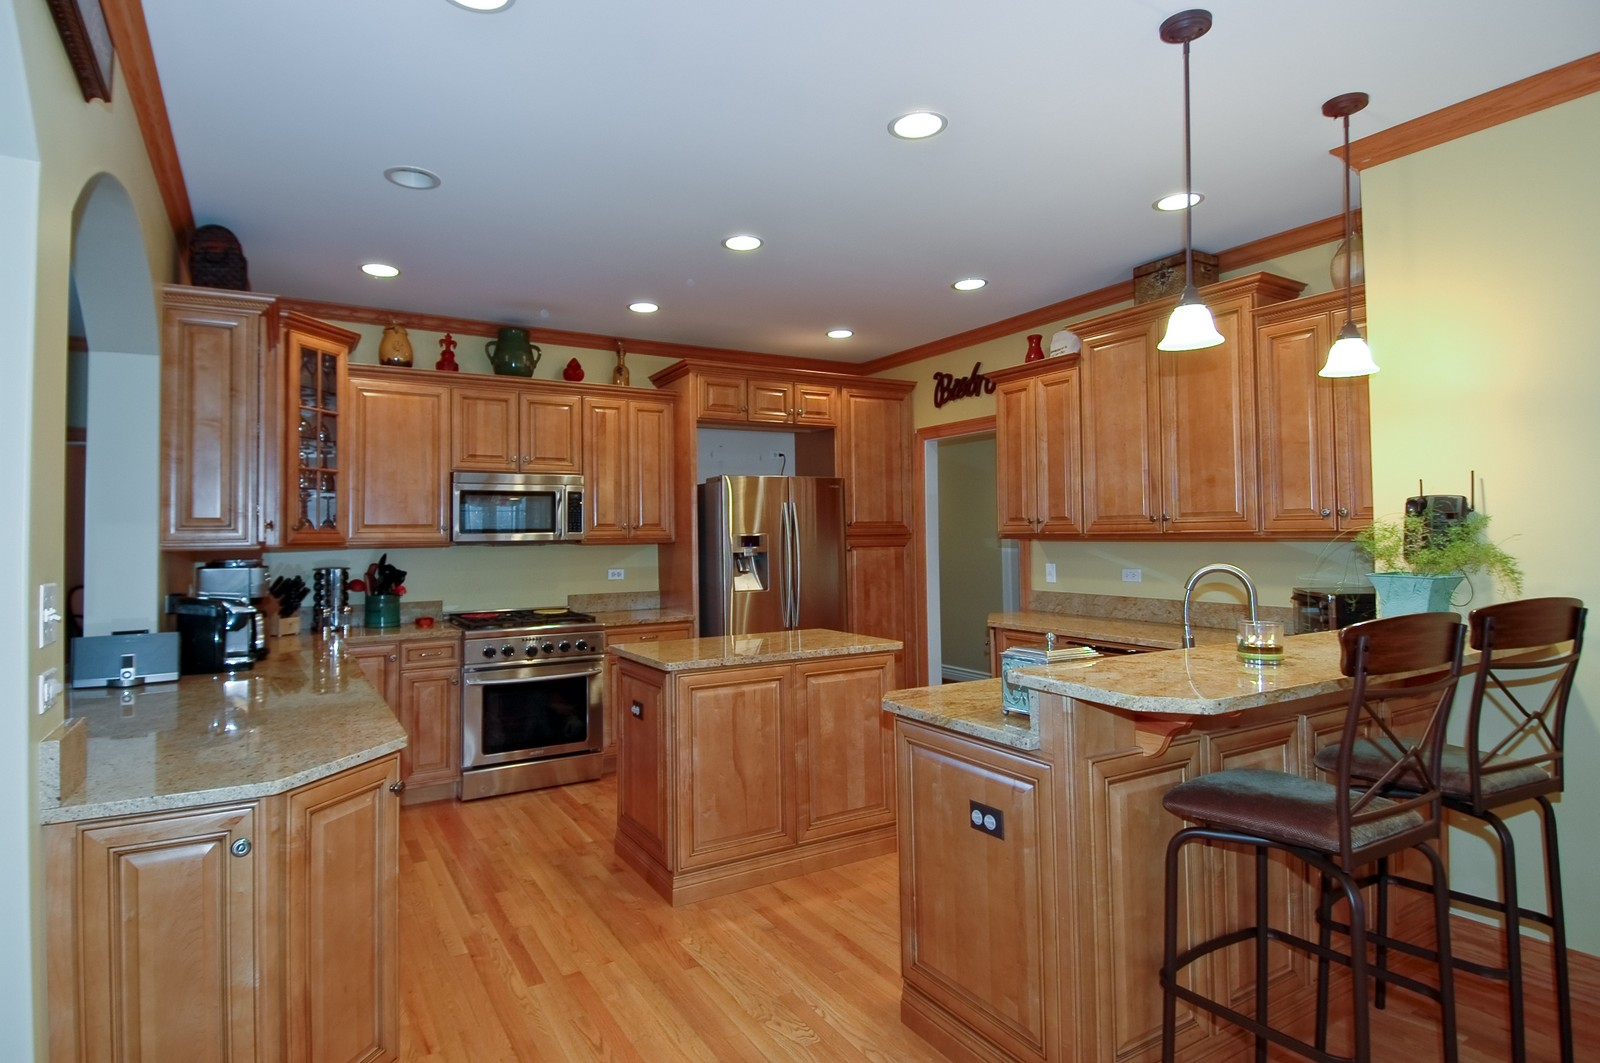 Real Estate Photography - 2100 Nish, Crystal Lake, IL, 60012 - Kitchen